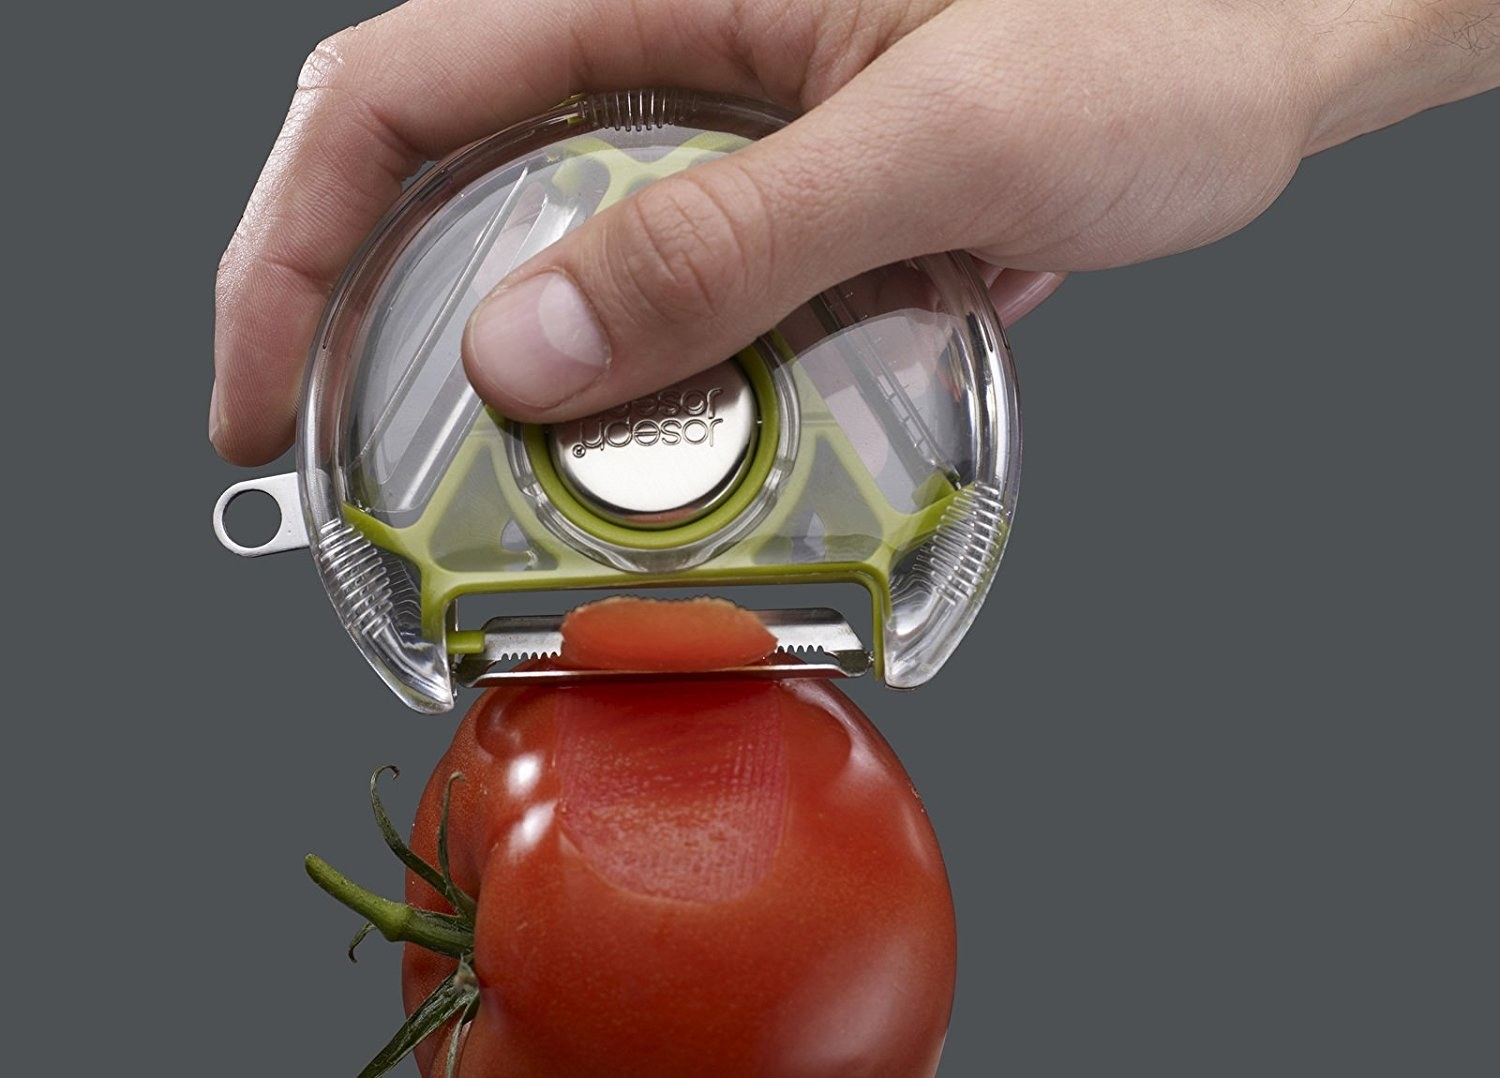 A flat cylindrical vegetable peeler with an open end to expose the desirable blade